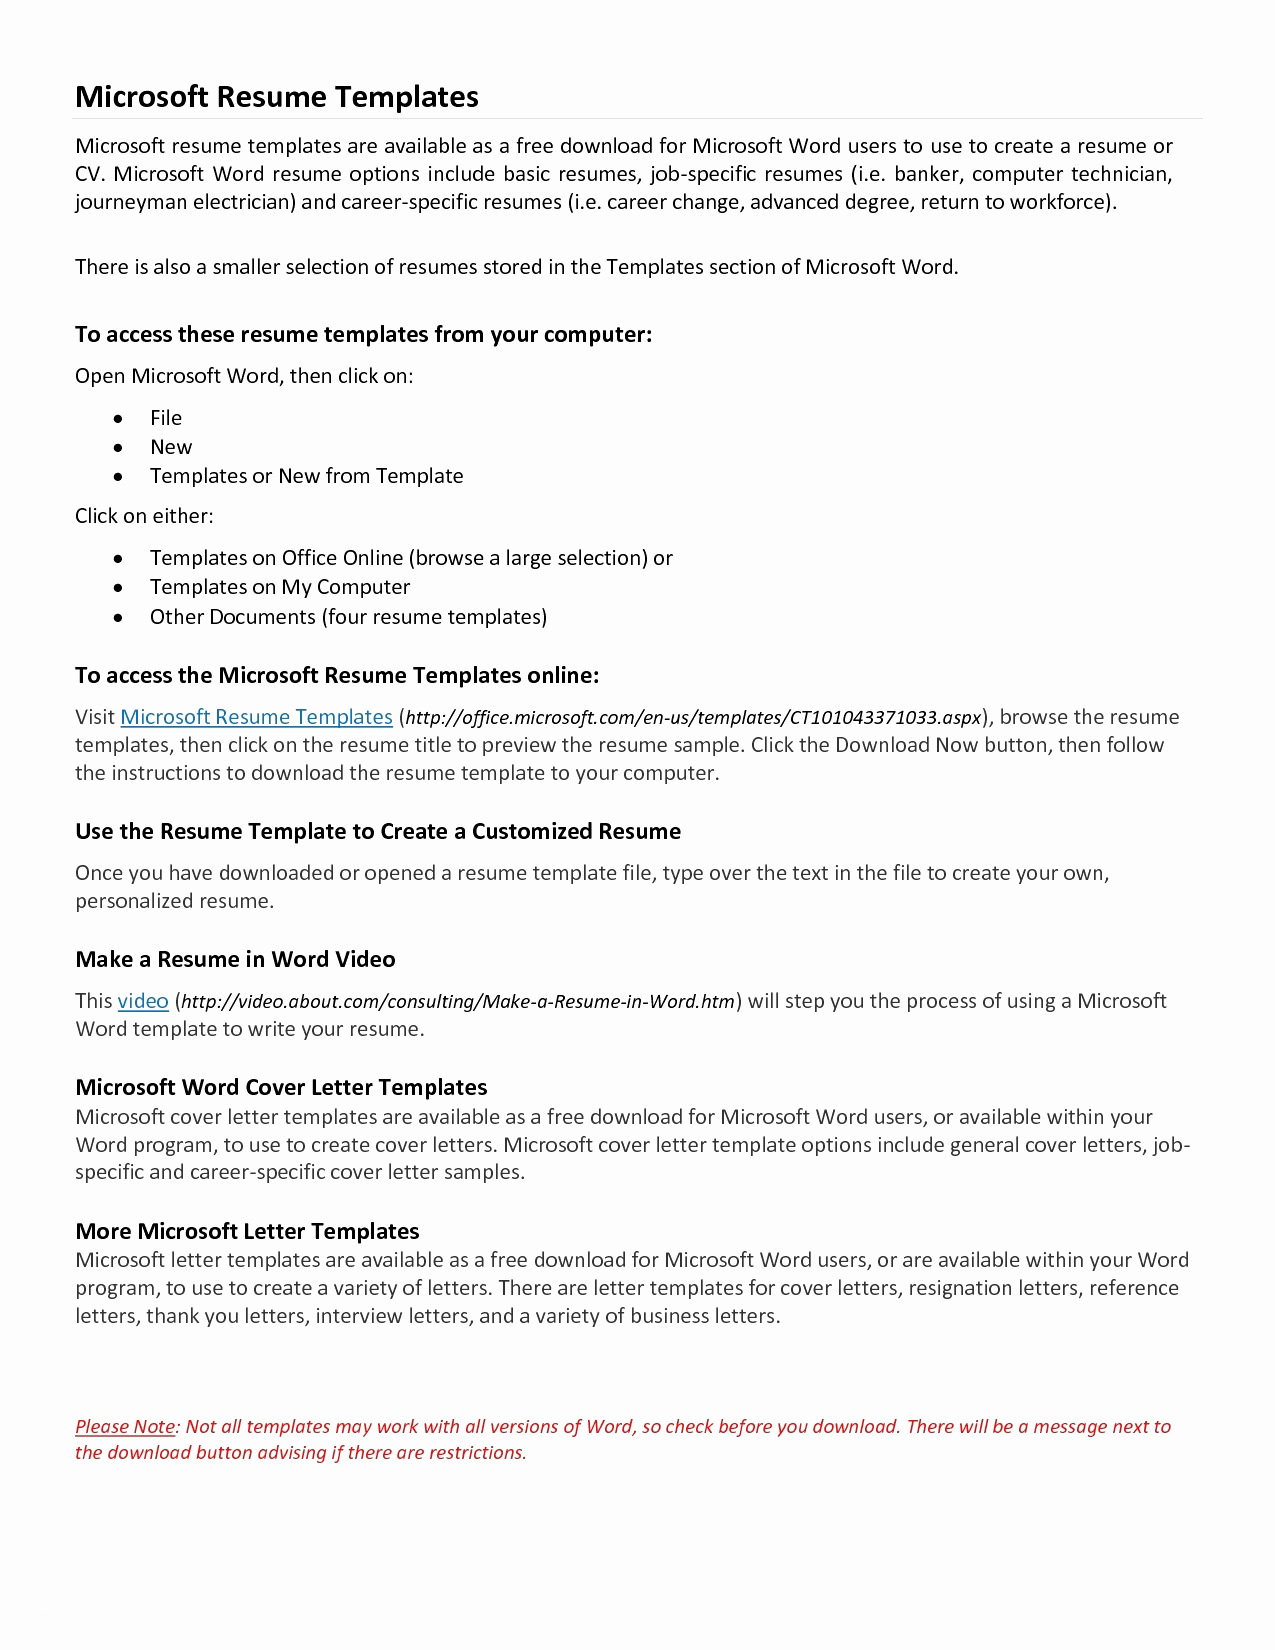 Resume and Cover Letter Template Microsoft Word - Free Microsoft Resume Templates New Microsoft Word Resume Sample